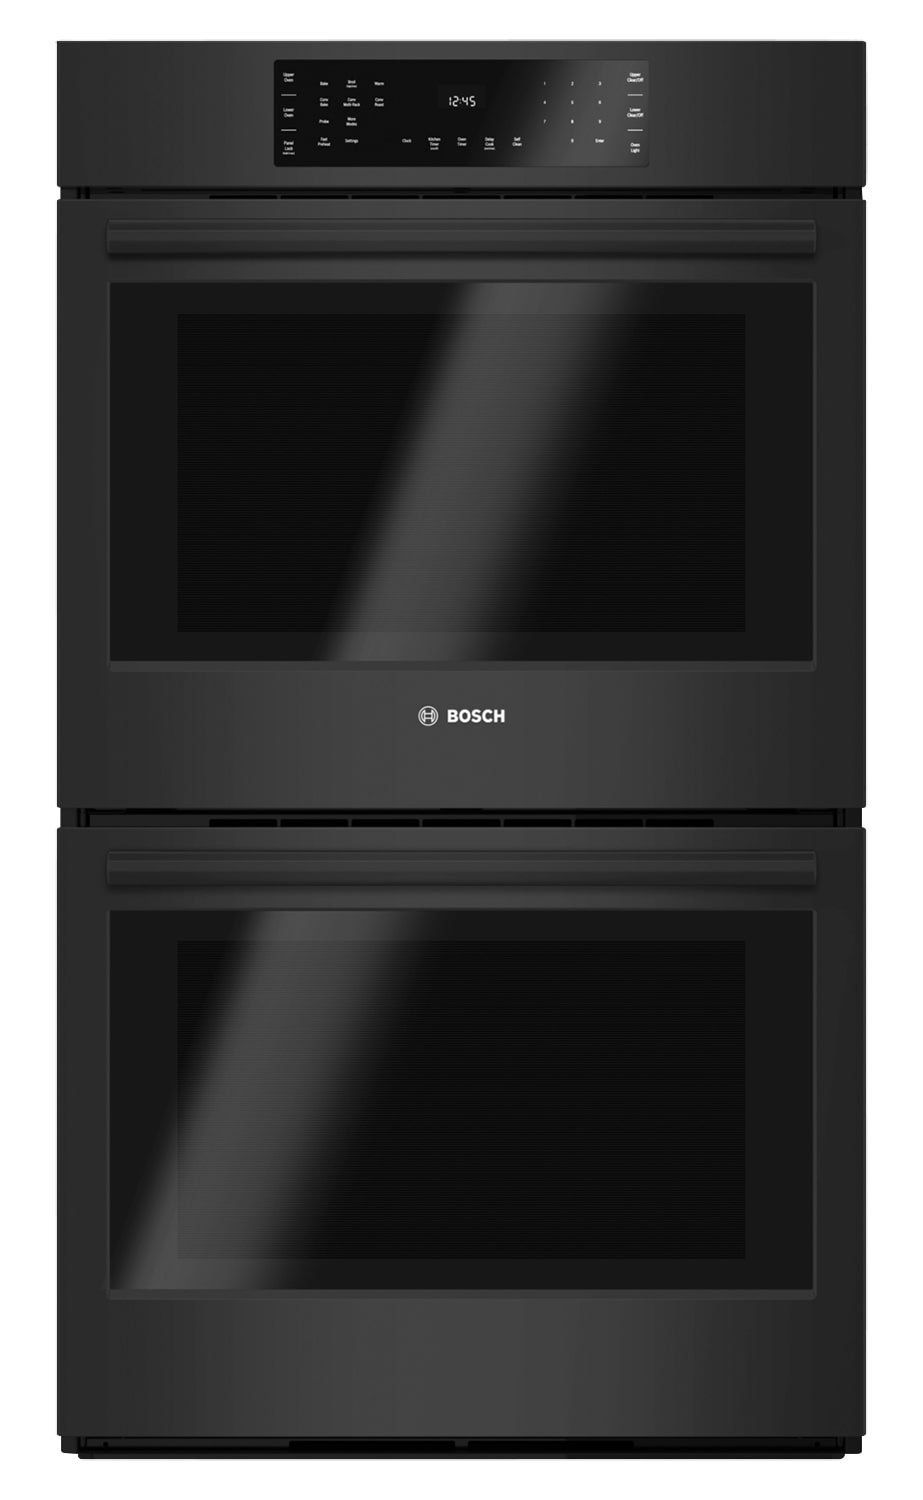 Cooking Products - Bosch 800 Series 5.6 Cu. Ft. Double Wall Oven – HBL8661UC